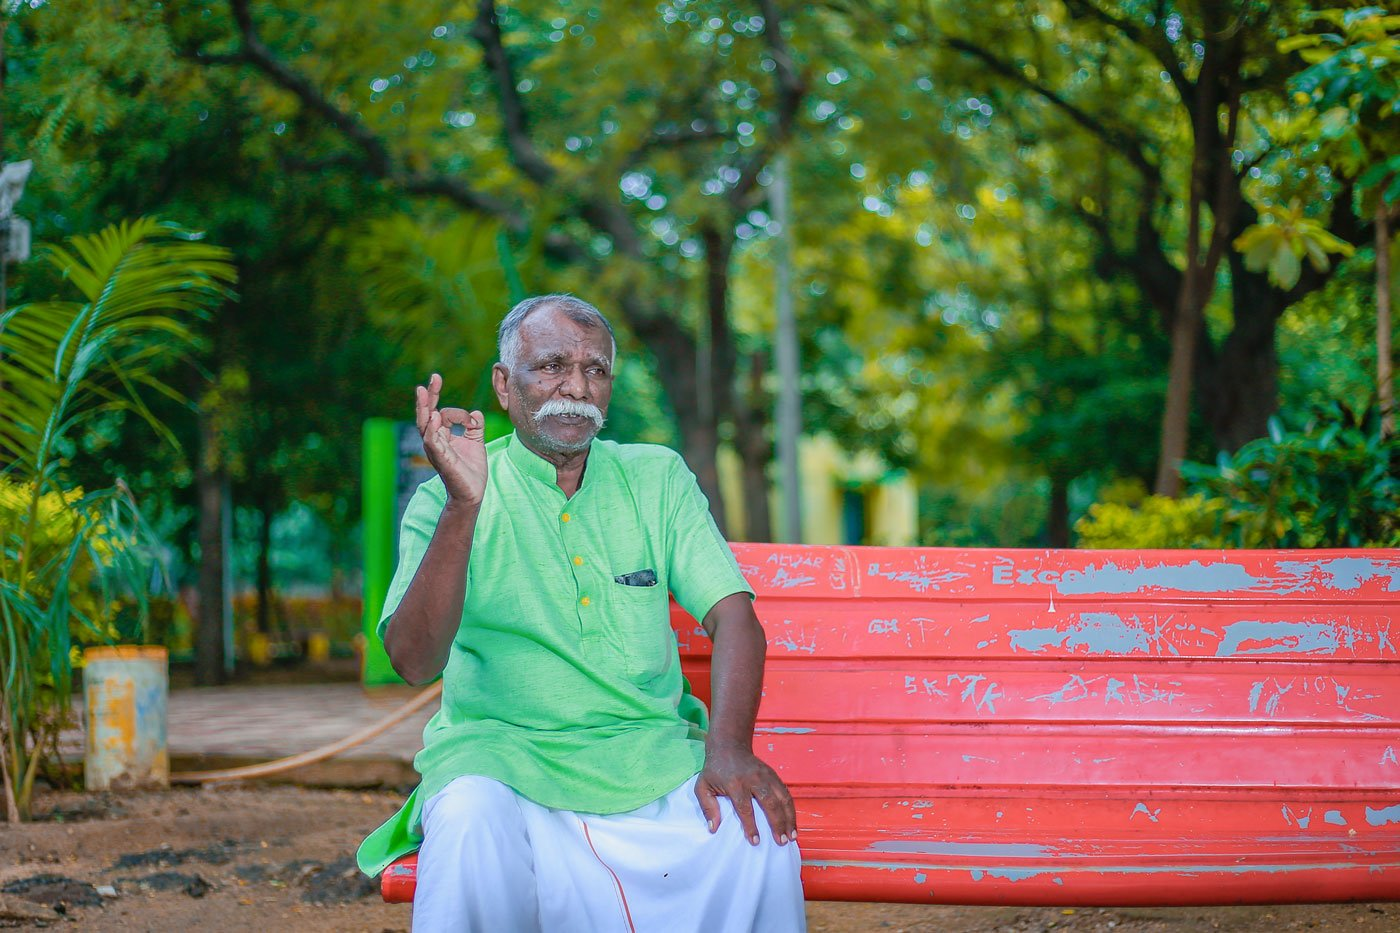 Cho Dharman: 'The Covid crisis is an 'idiyappa sikkal' [the tangle of rice strings in rice hoppers]. The poor are suffering, how do we help them?'